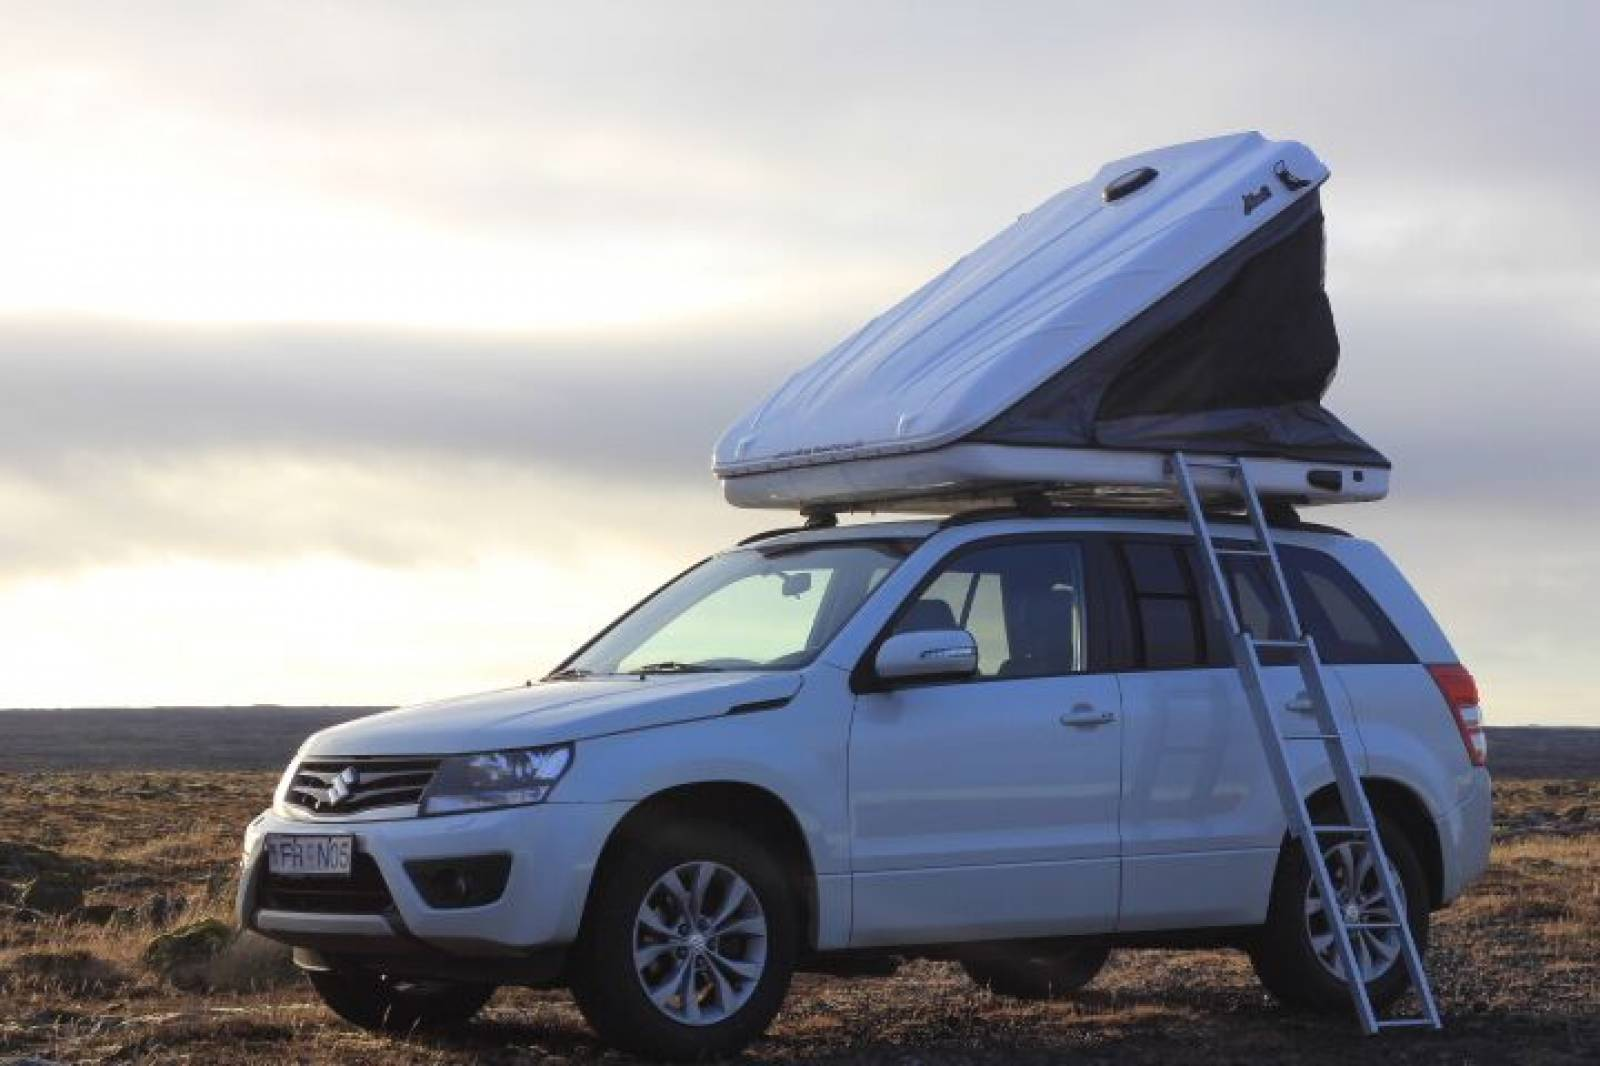 Grand Vitara Roof Tent with ladder